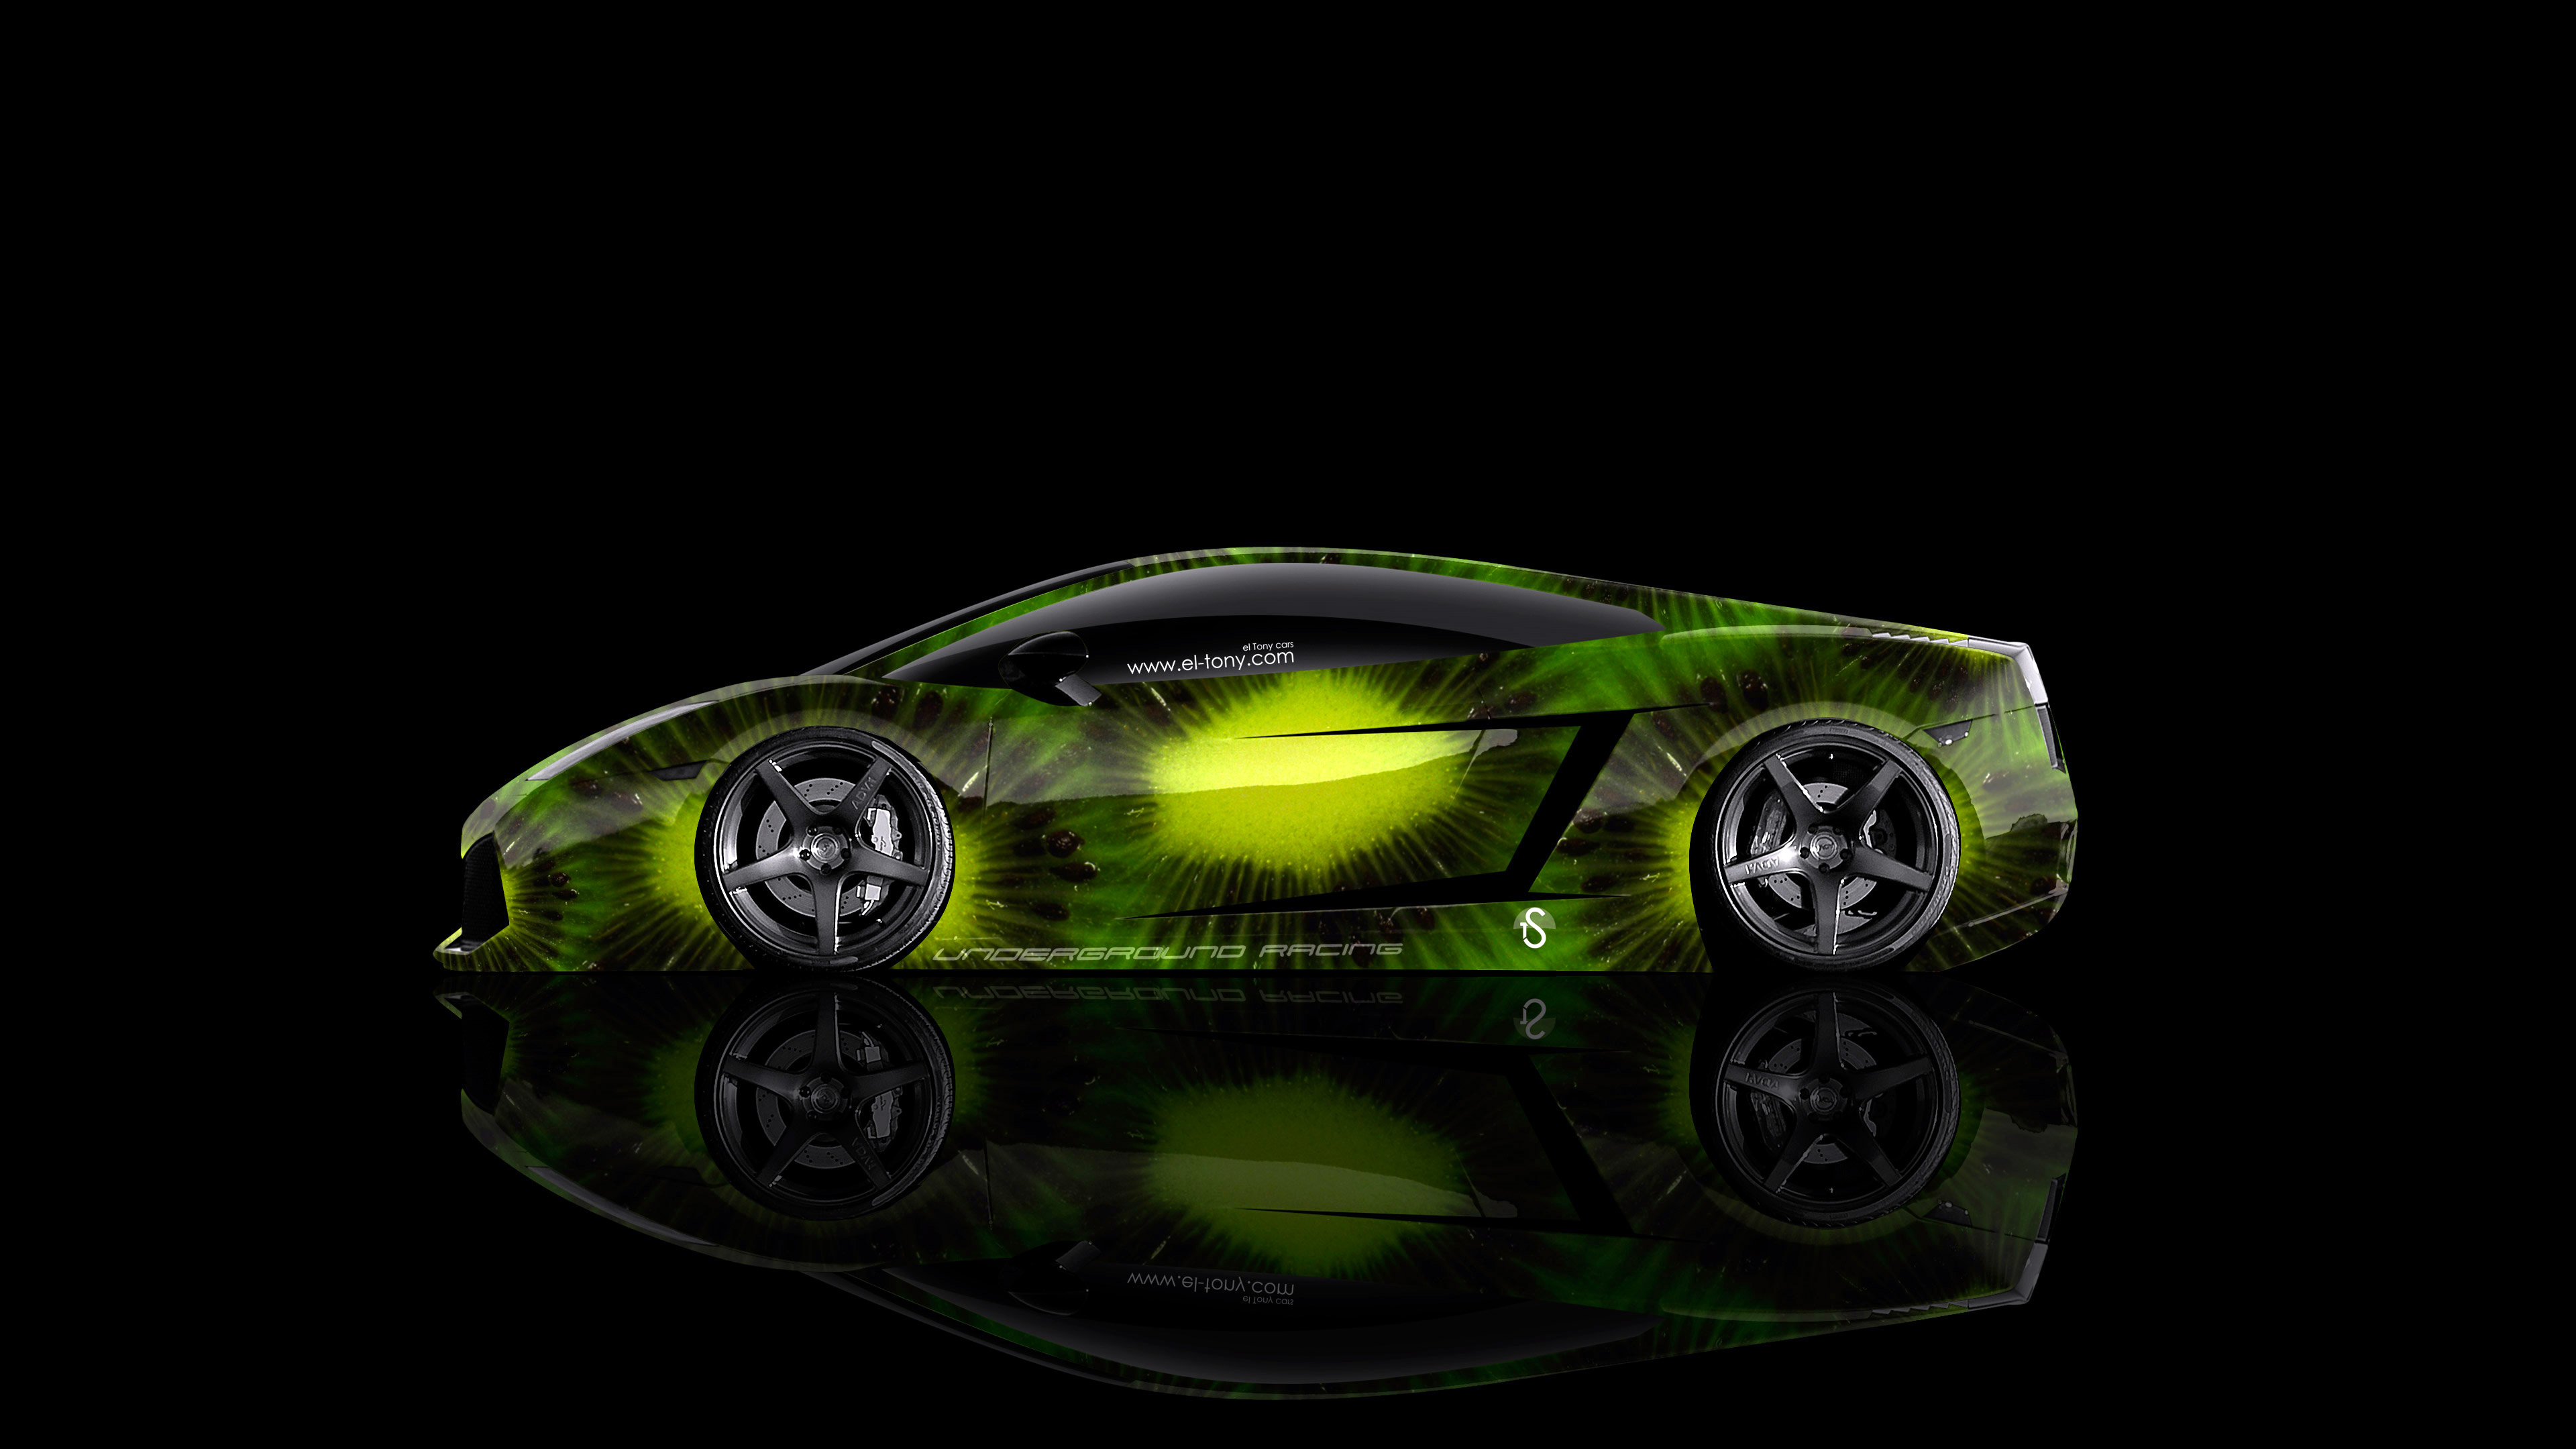 Gentil Lamborghini Gallardo Side Kiwi Aerography Car 2014 Green